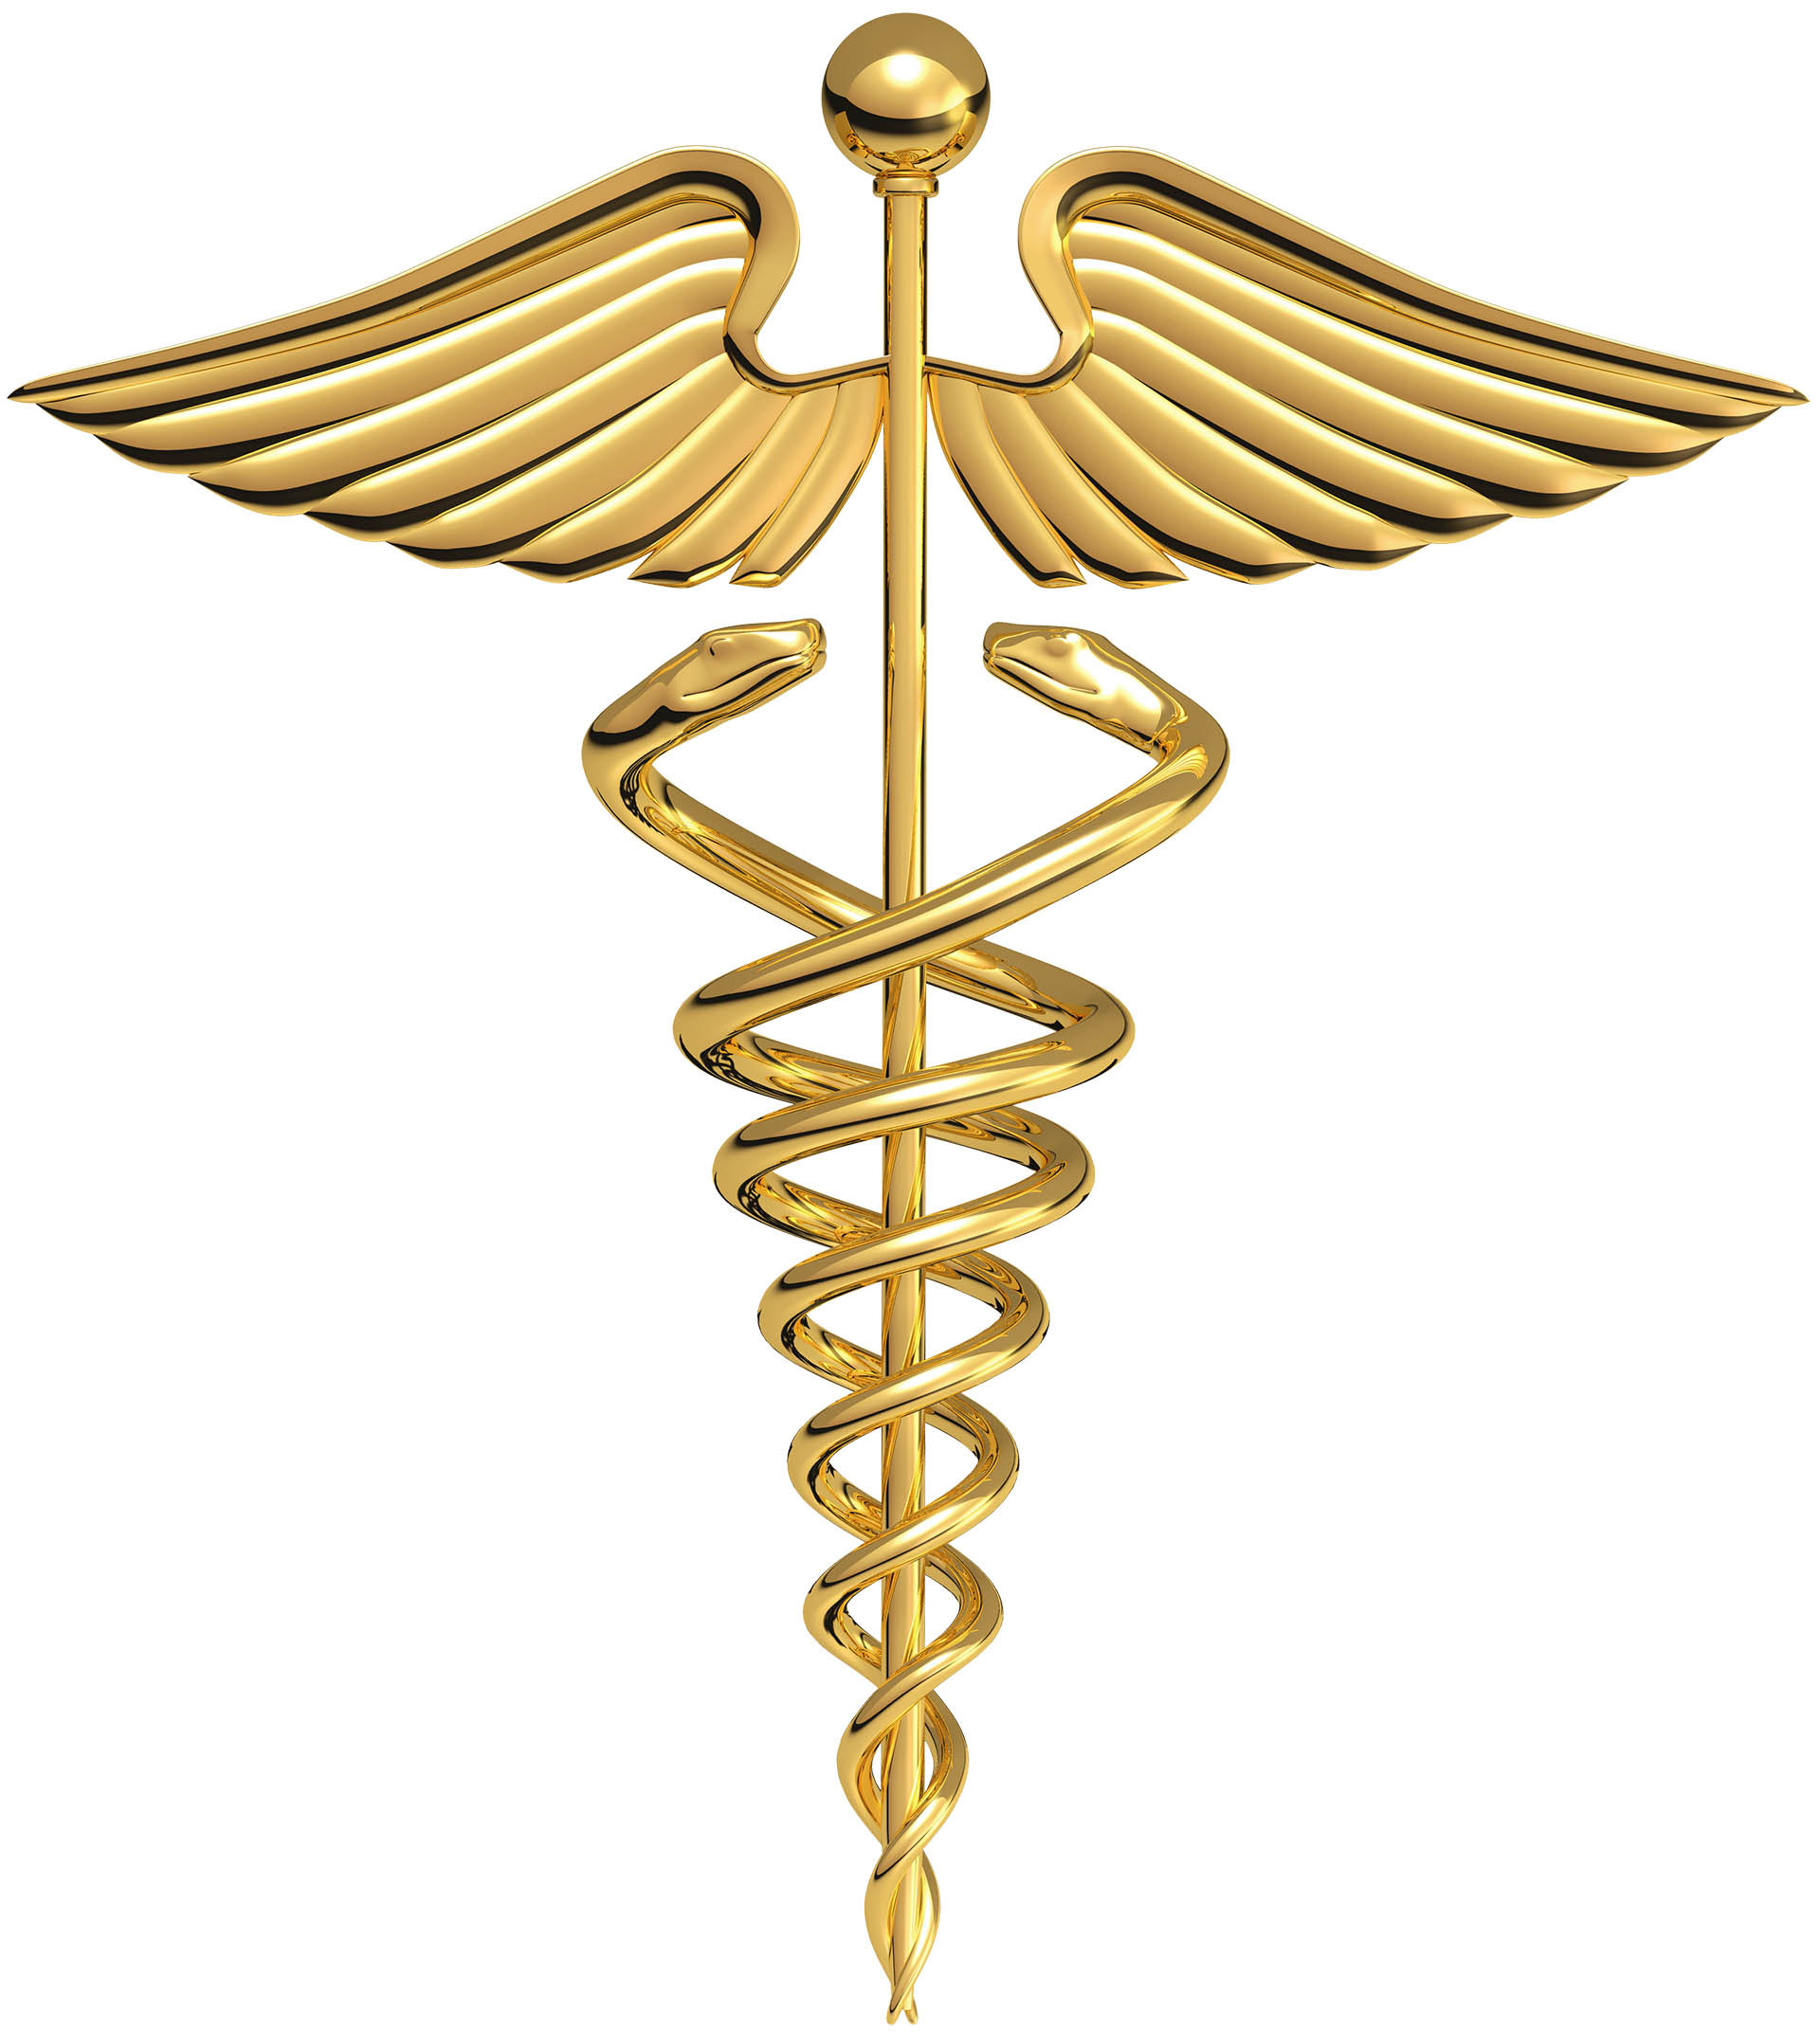 Caduceus - HEALTH - Messenger of the gods - COMPASSION - MERCY - DO NO HARM - FEAR NOT - BE NOT AFRAID - CAUSE NO PAIN - BE AS PAINLESS AS POSSIBLE - CAUSE NO FEAR - DO NOT BE SCARY - USE BIRTH CONTROL - PERMIT DIVORCE - DO NOT PUNISH - DO NOT MAKE THR